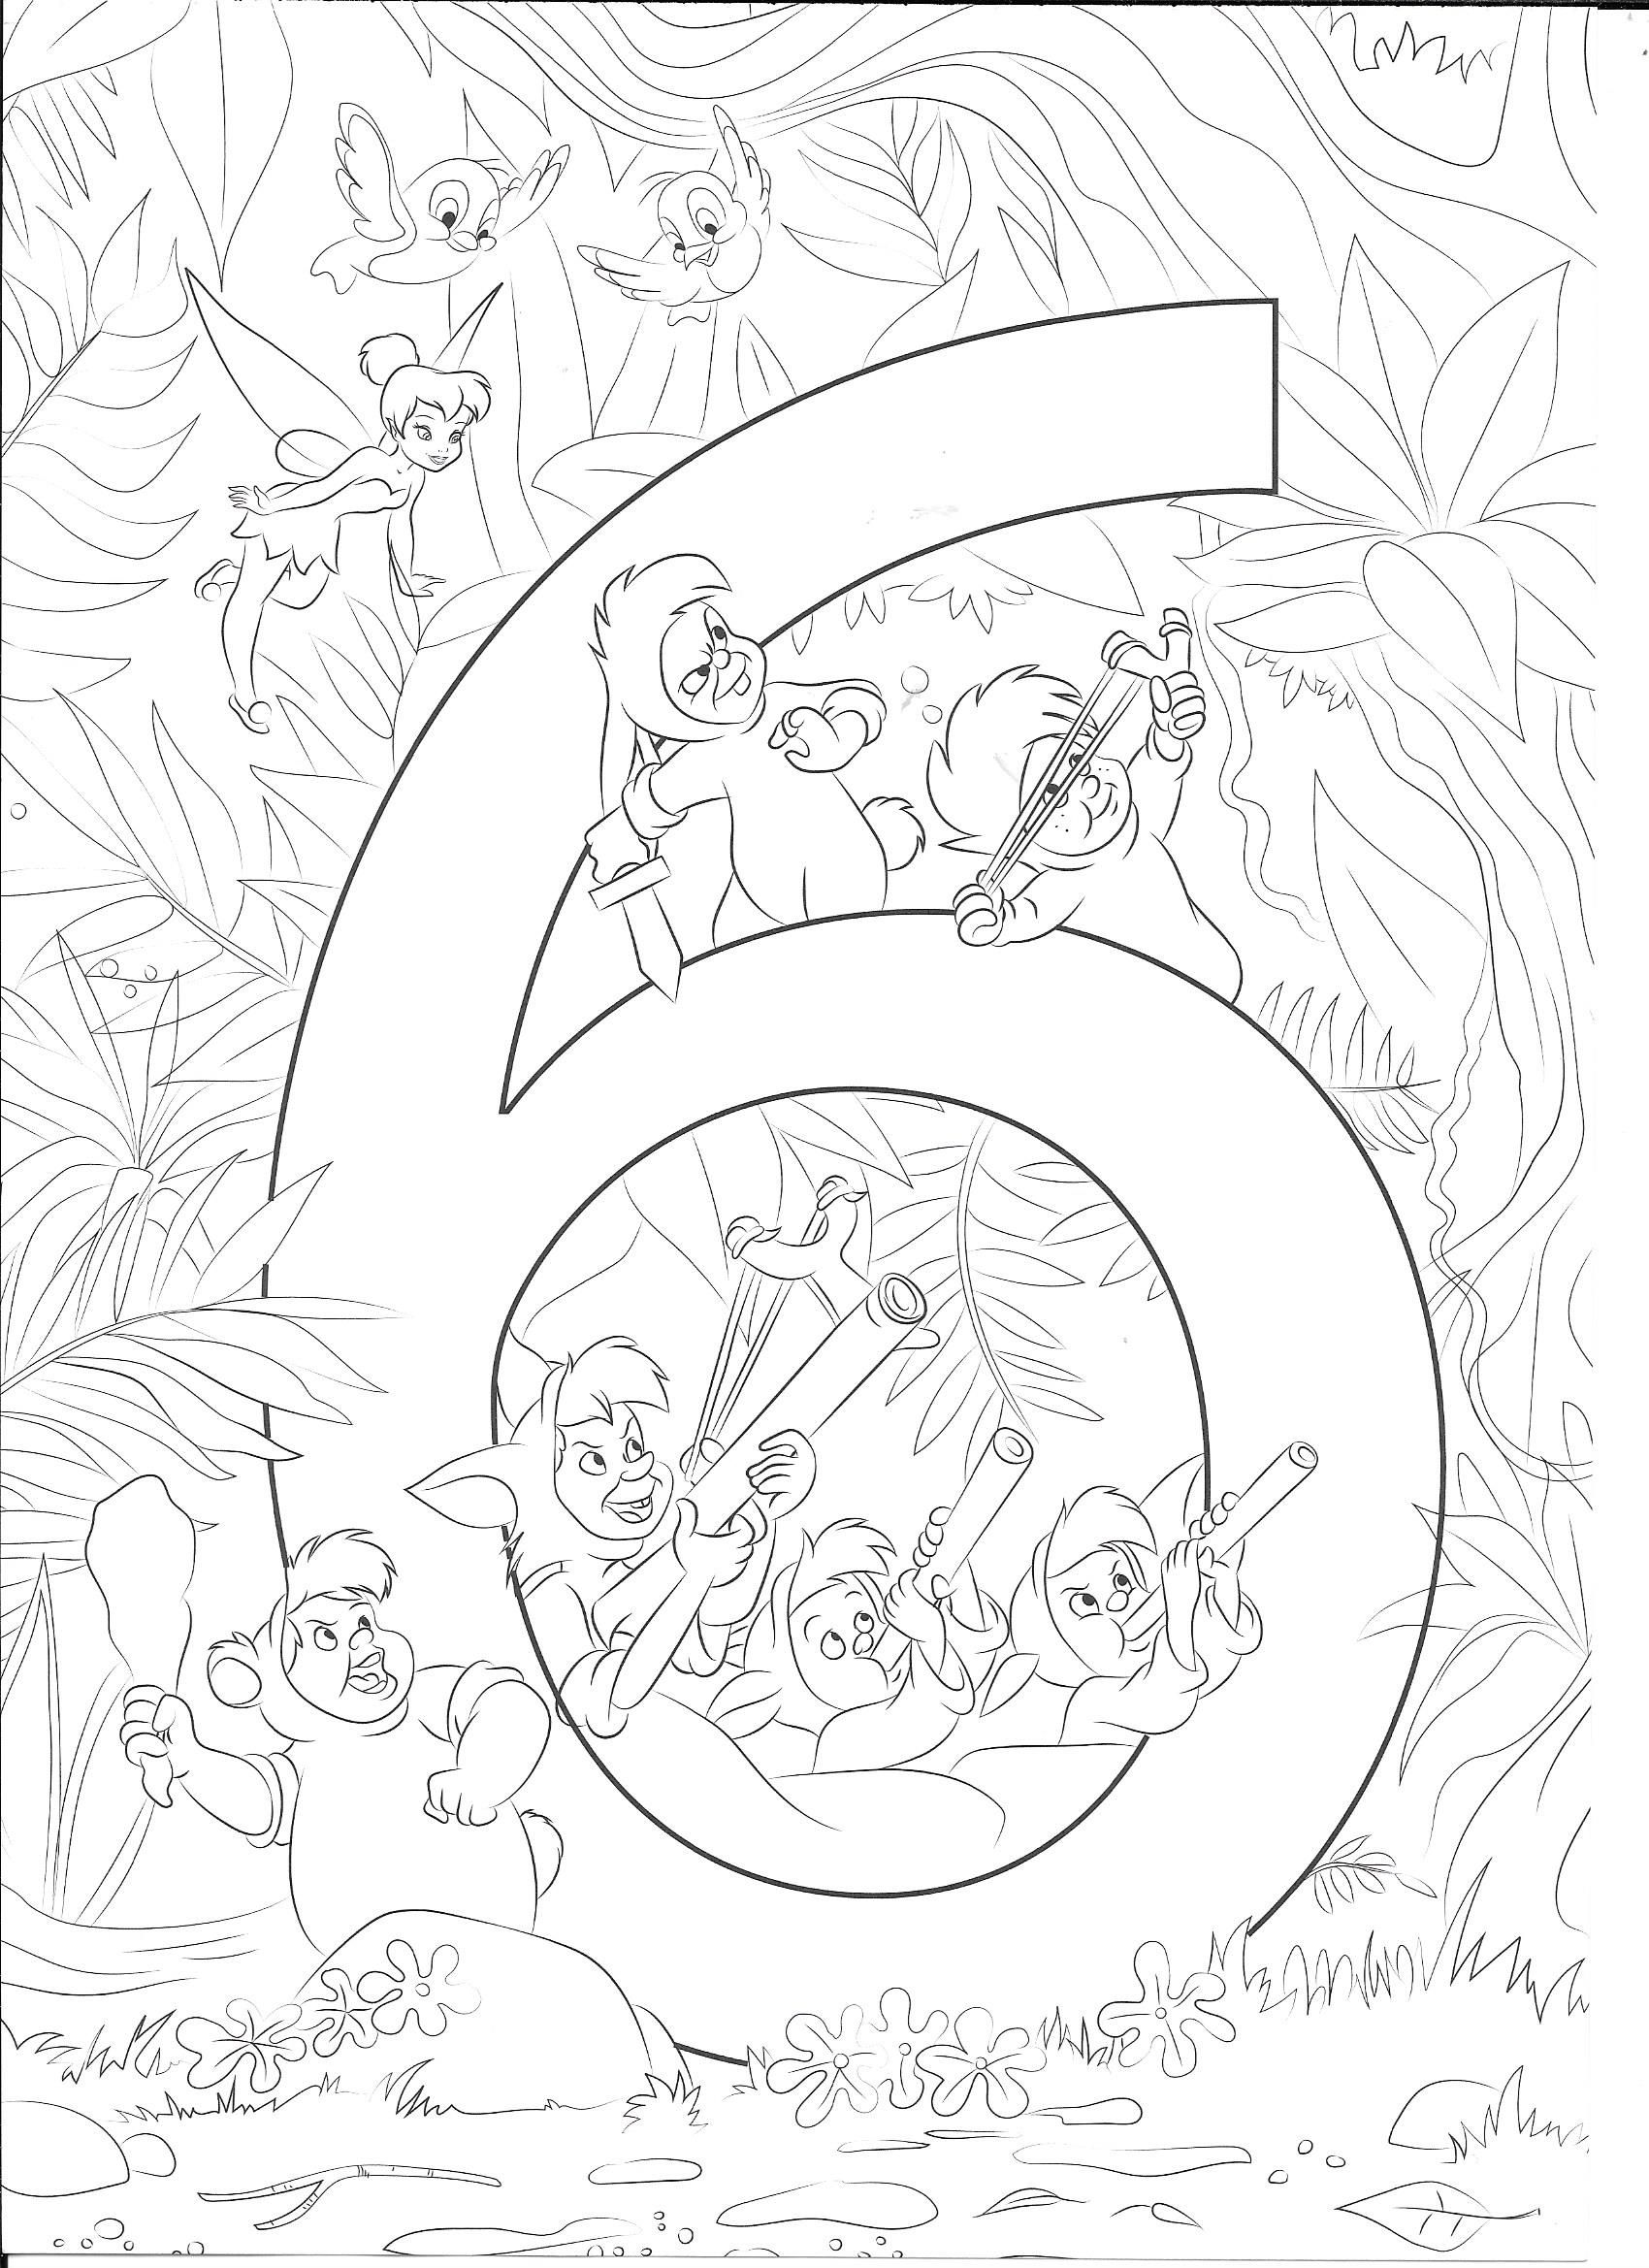 Pin By Lisa Smith On Free Time Art In 2020 Coloring Pages Abc Coloring Pages Disney Coloring Pages